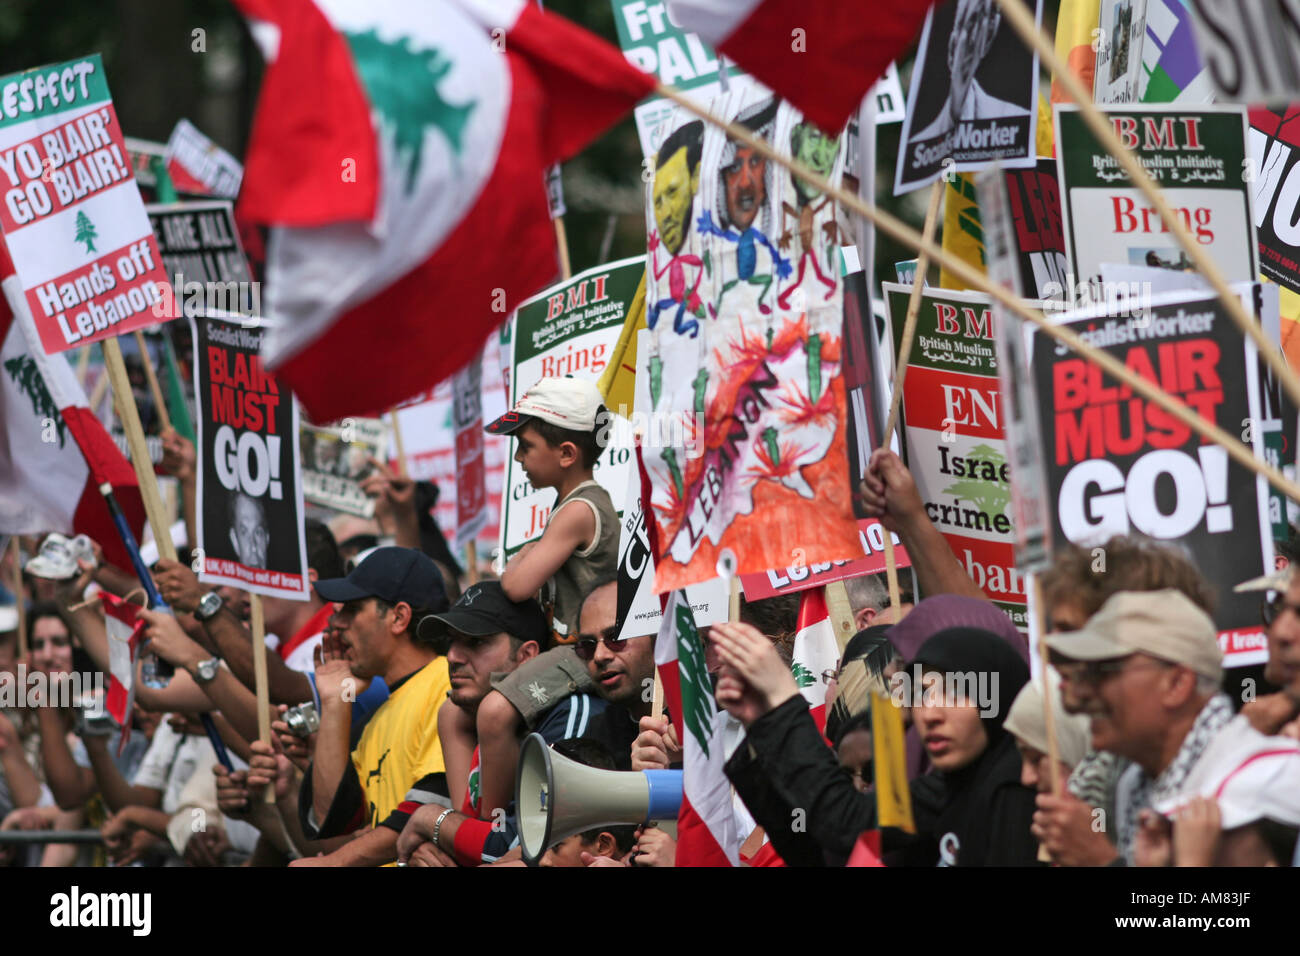 Protesters with placards at an anti-war demonstration in London UK - Stock Image